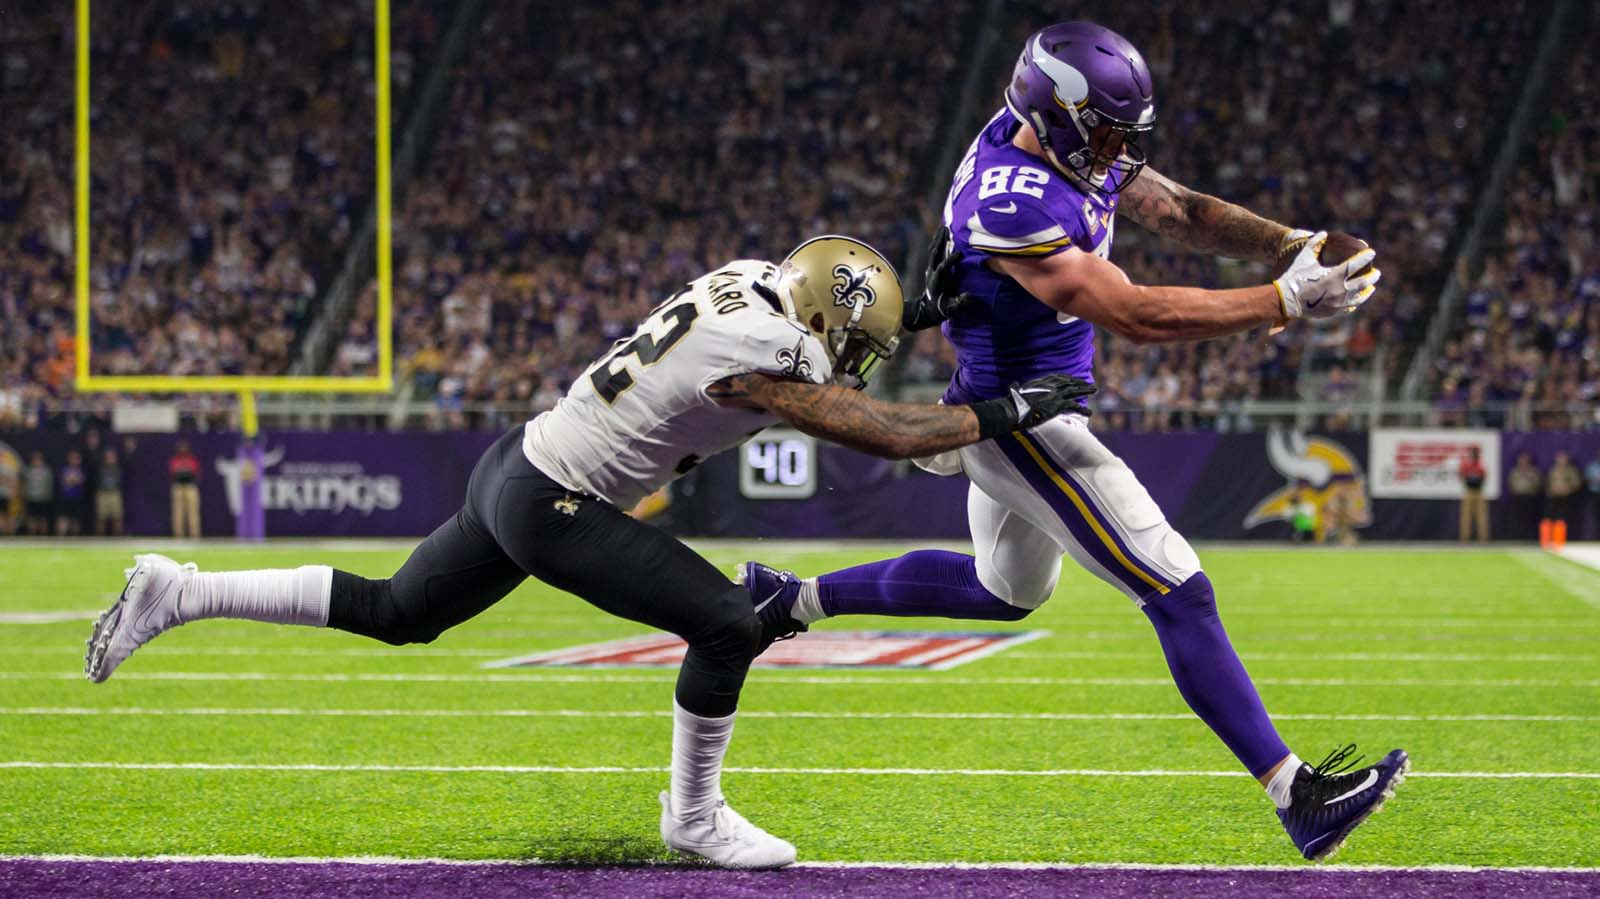 pi-fsn-vikings-kyle-rudolph-touchdown-saints-091117